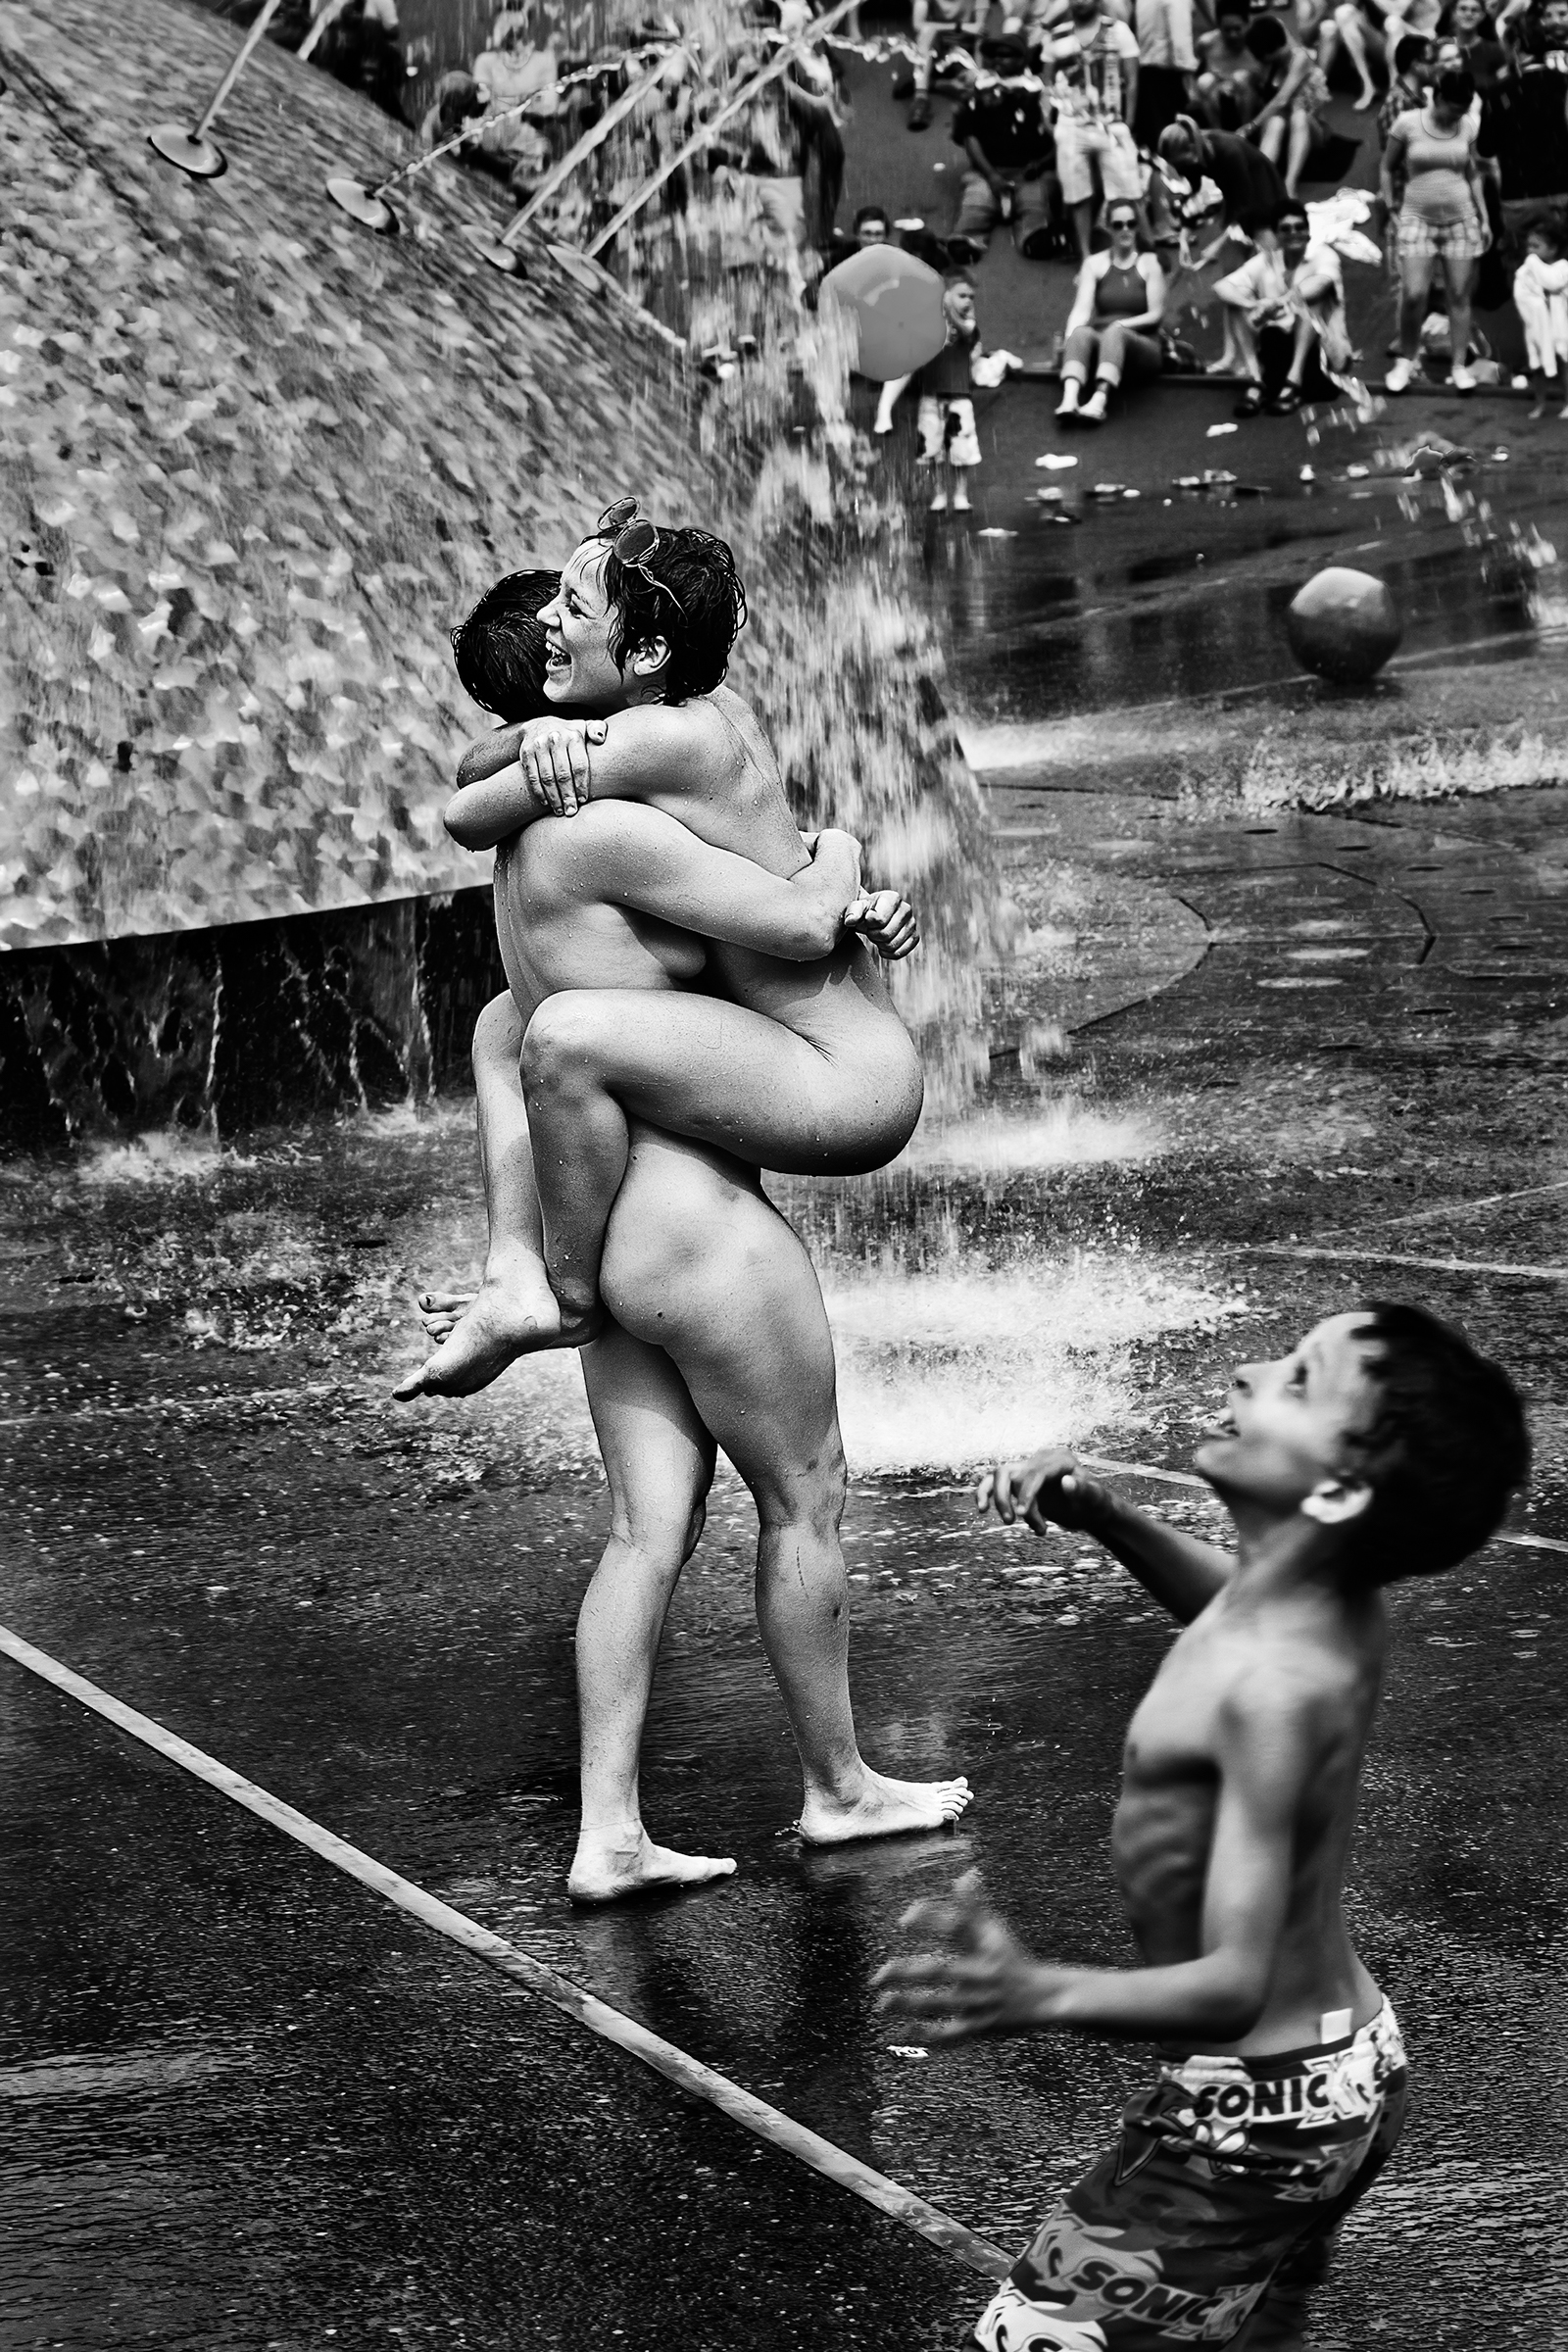 Two women embrace while a boy plays ball at the International Fountain at Seattle PrideFest on June 26th, 2011.